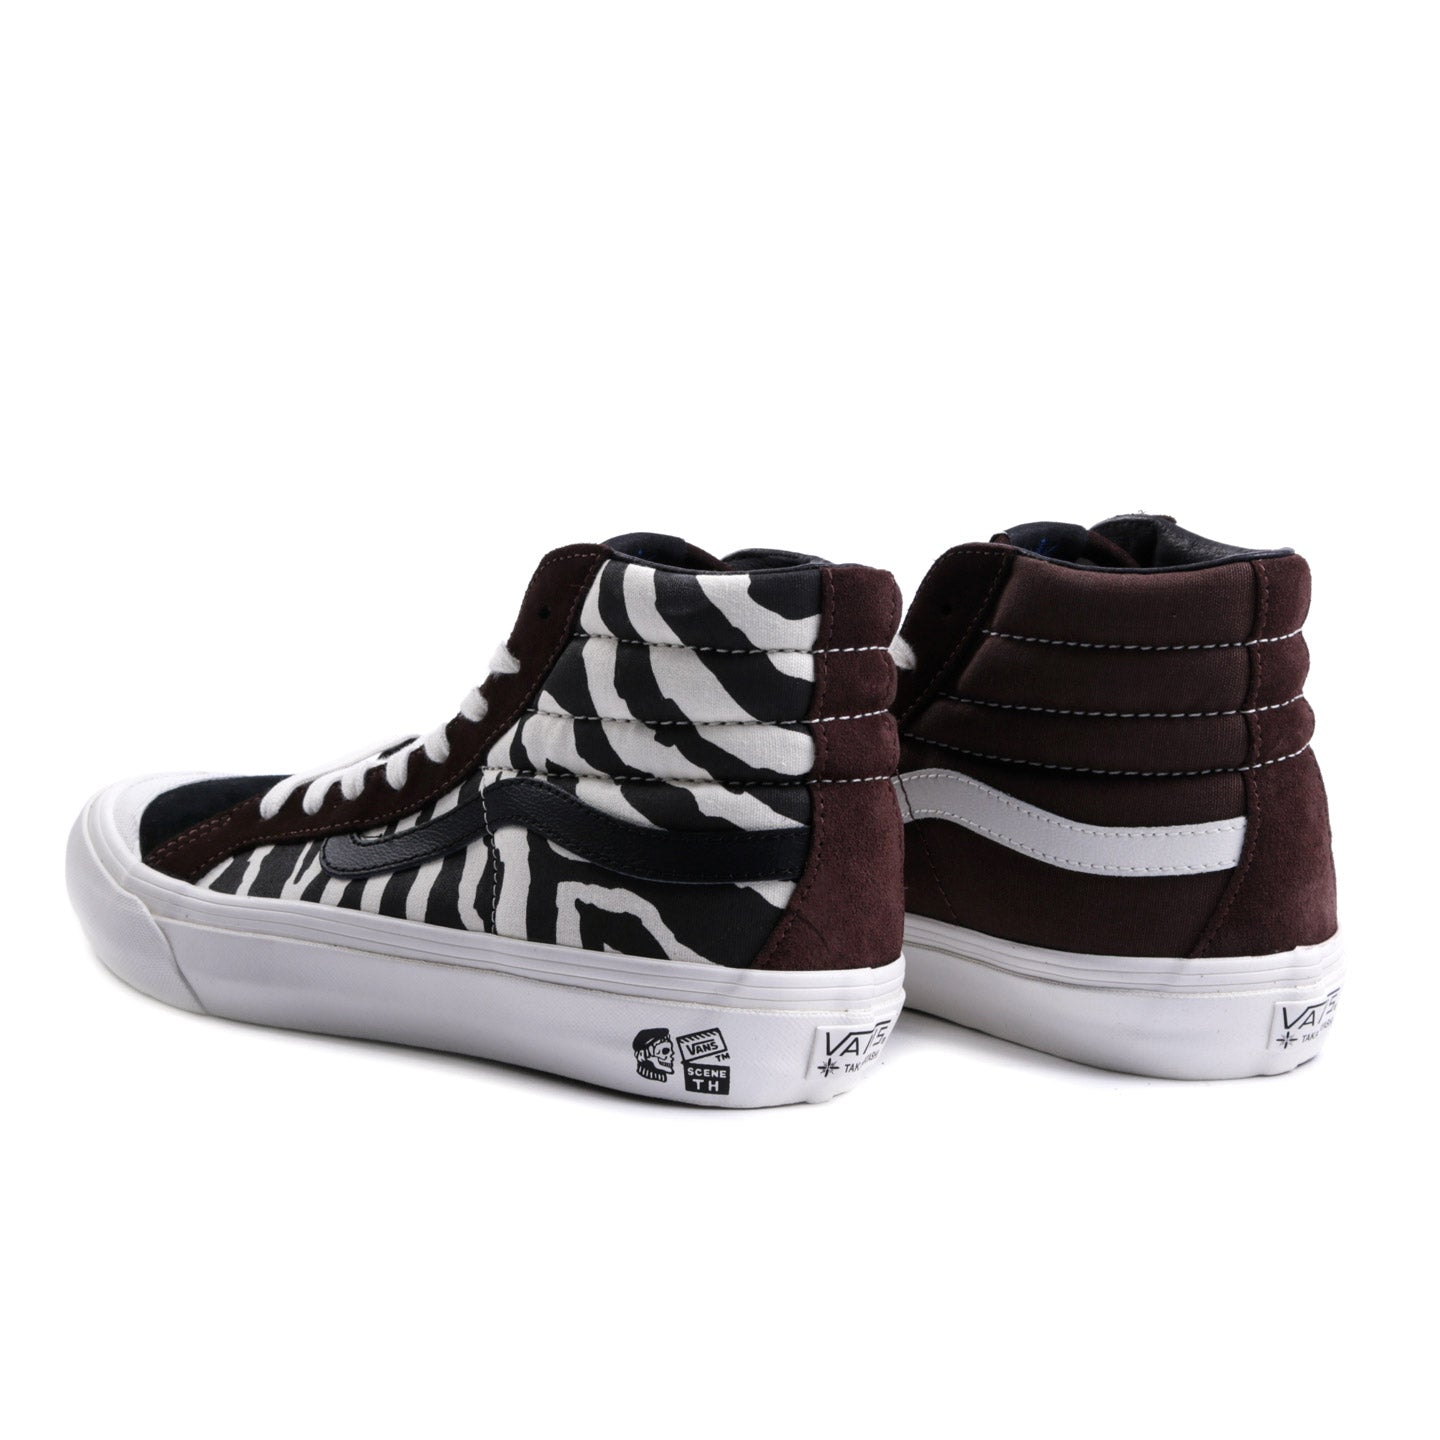 VAULT BY VANS TH STYLE 138 LX ZEBRA